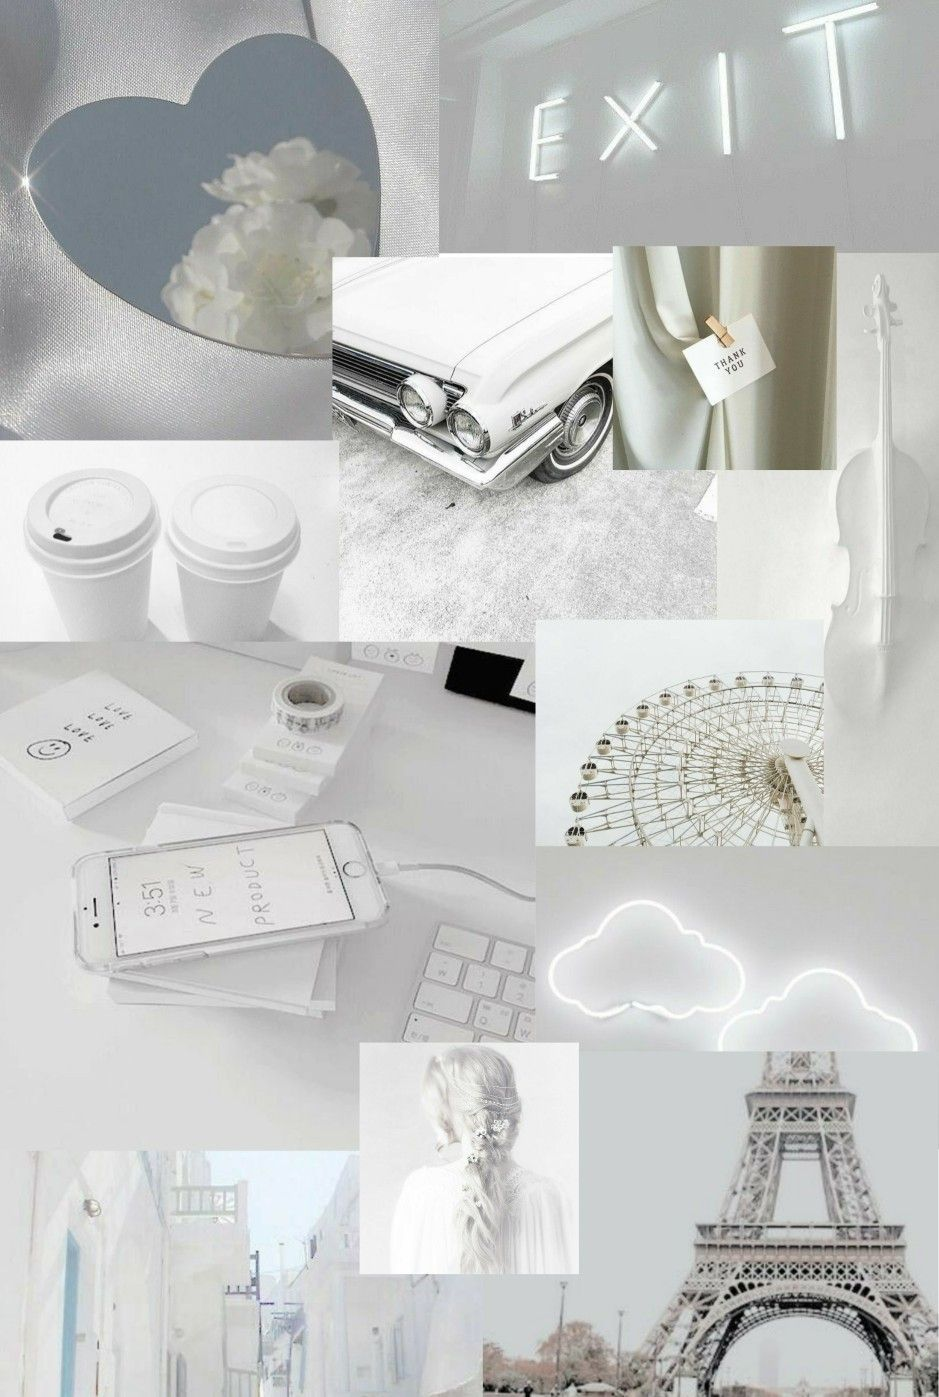 White Aesthetic Iphone Wallpaper Tumblr Aesthetic Aesthetic Desktop Wallpaper Aesthetic Iphone Wallpaper